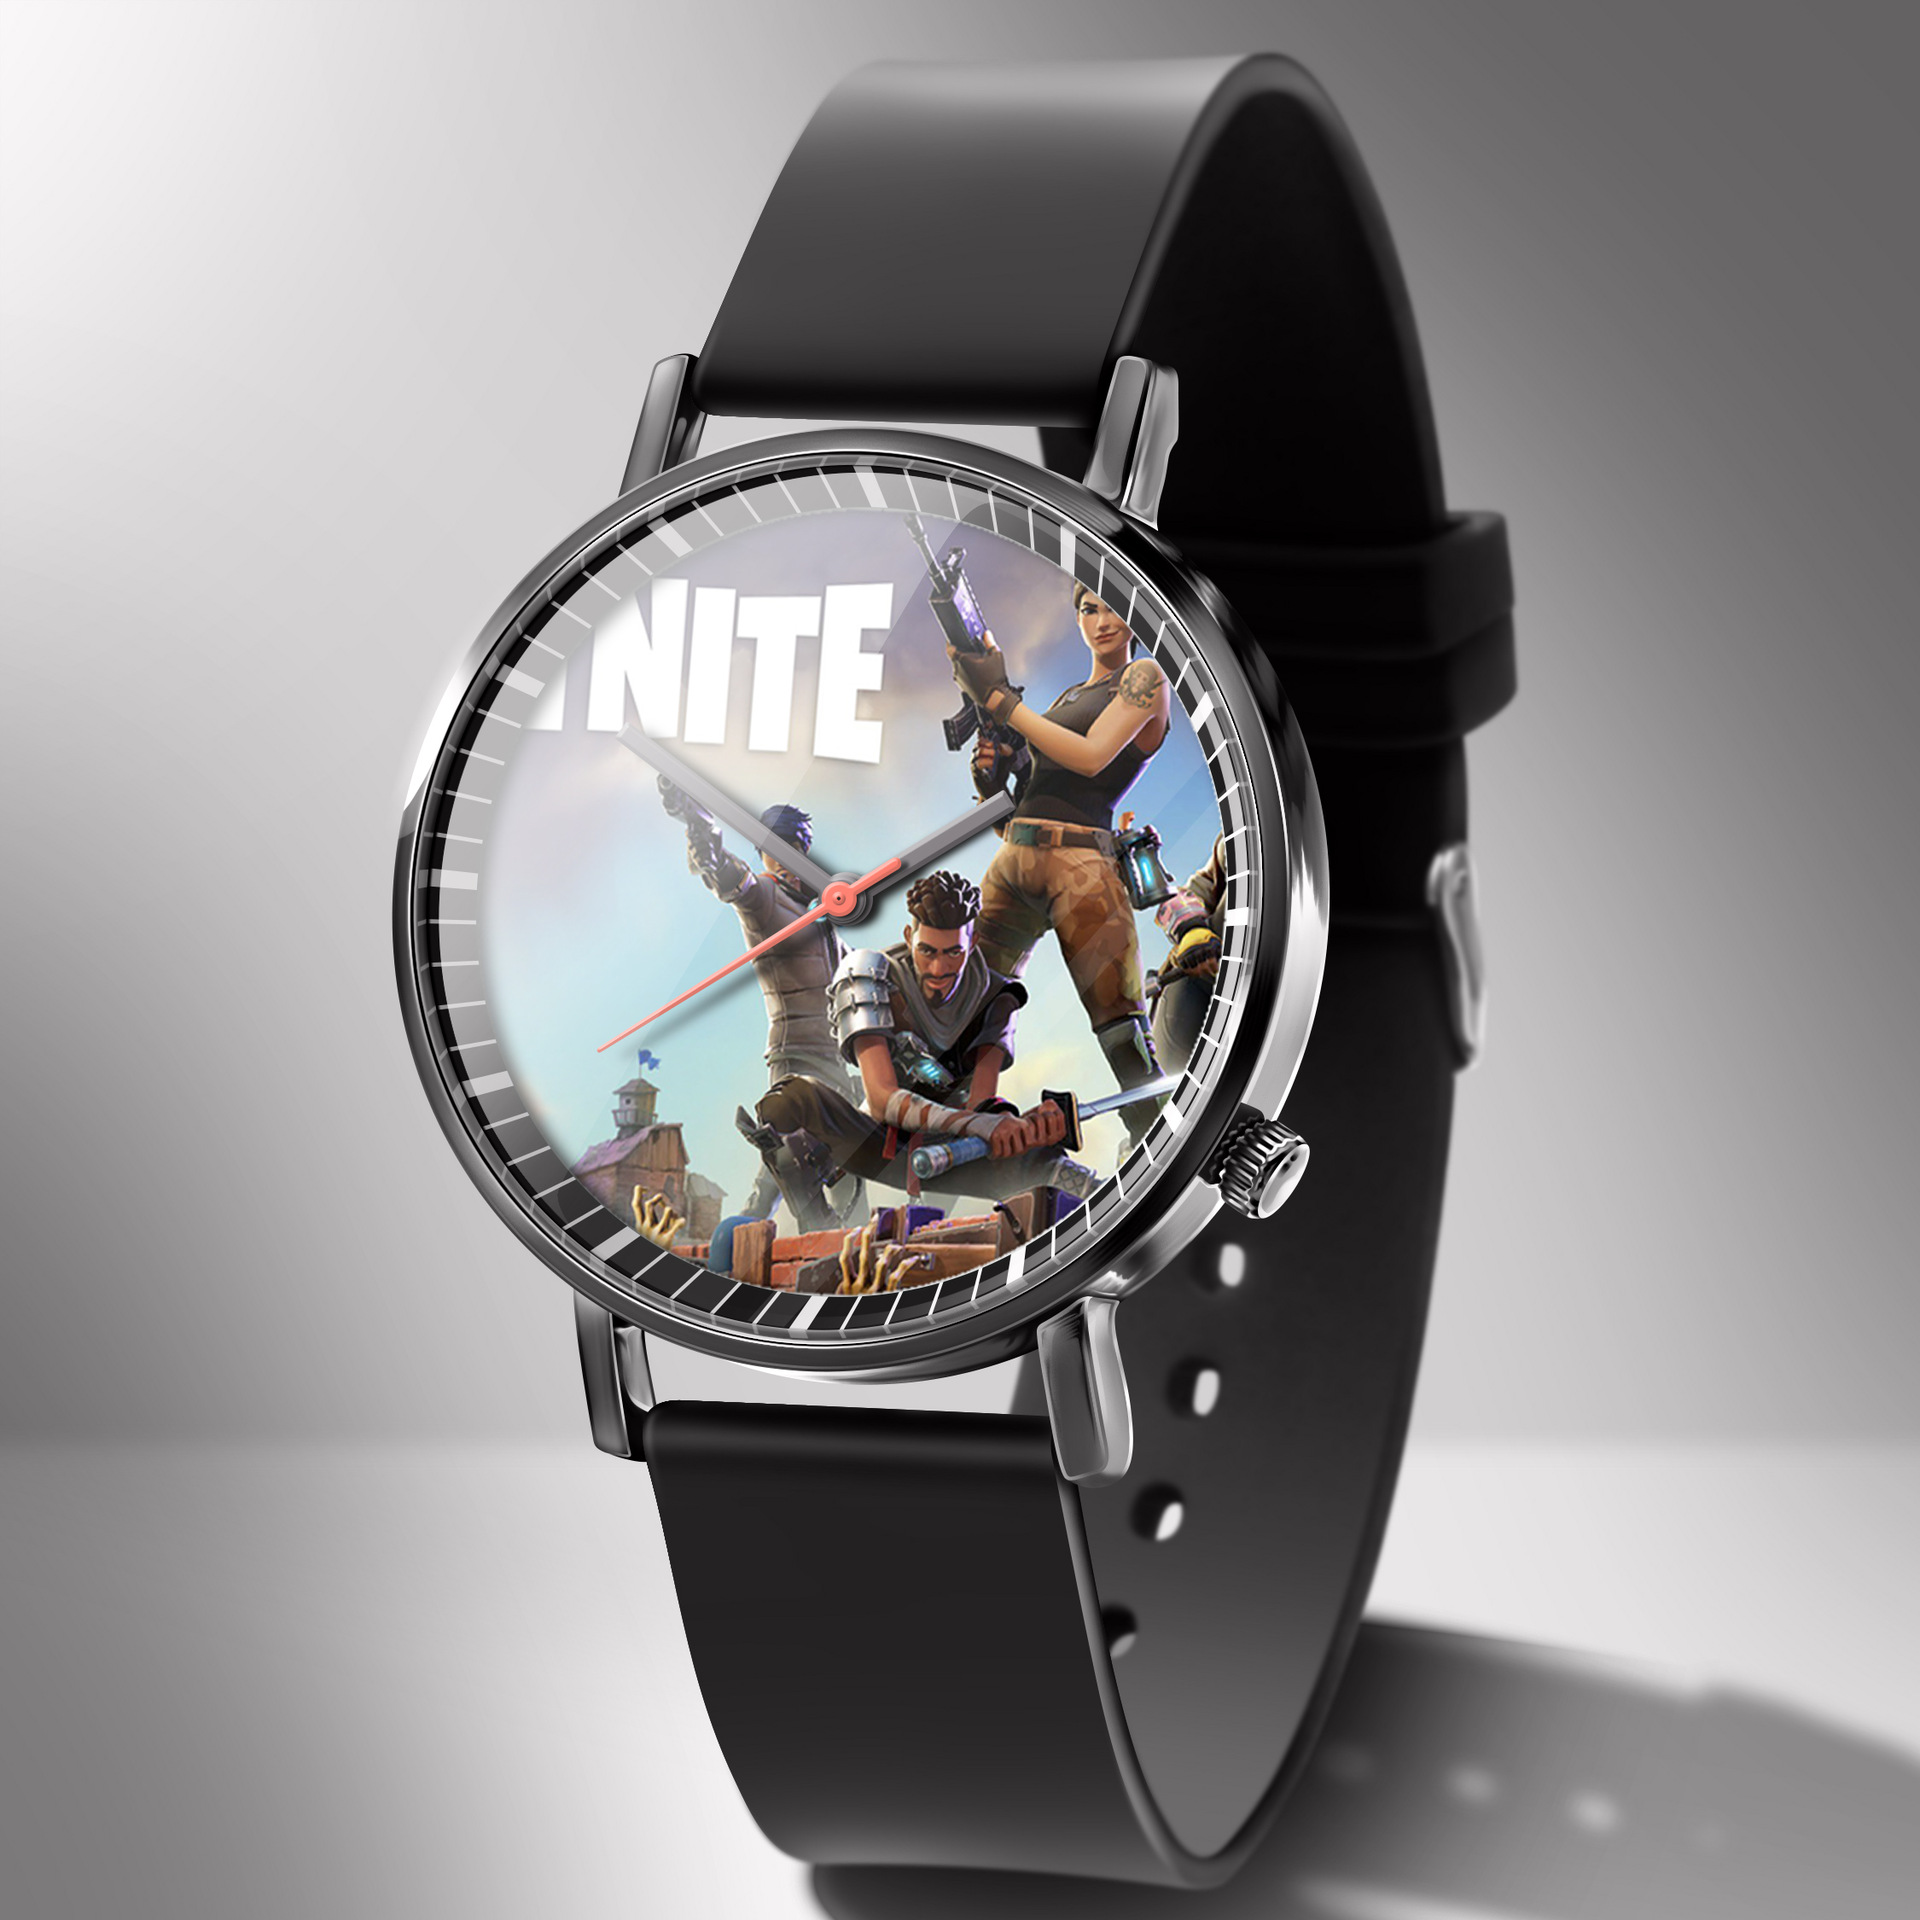 Fortnite watch student watch competitive shooting game trend fashion men's creative electronic student watch gift for children